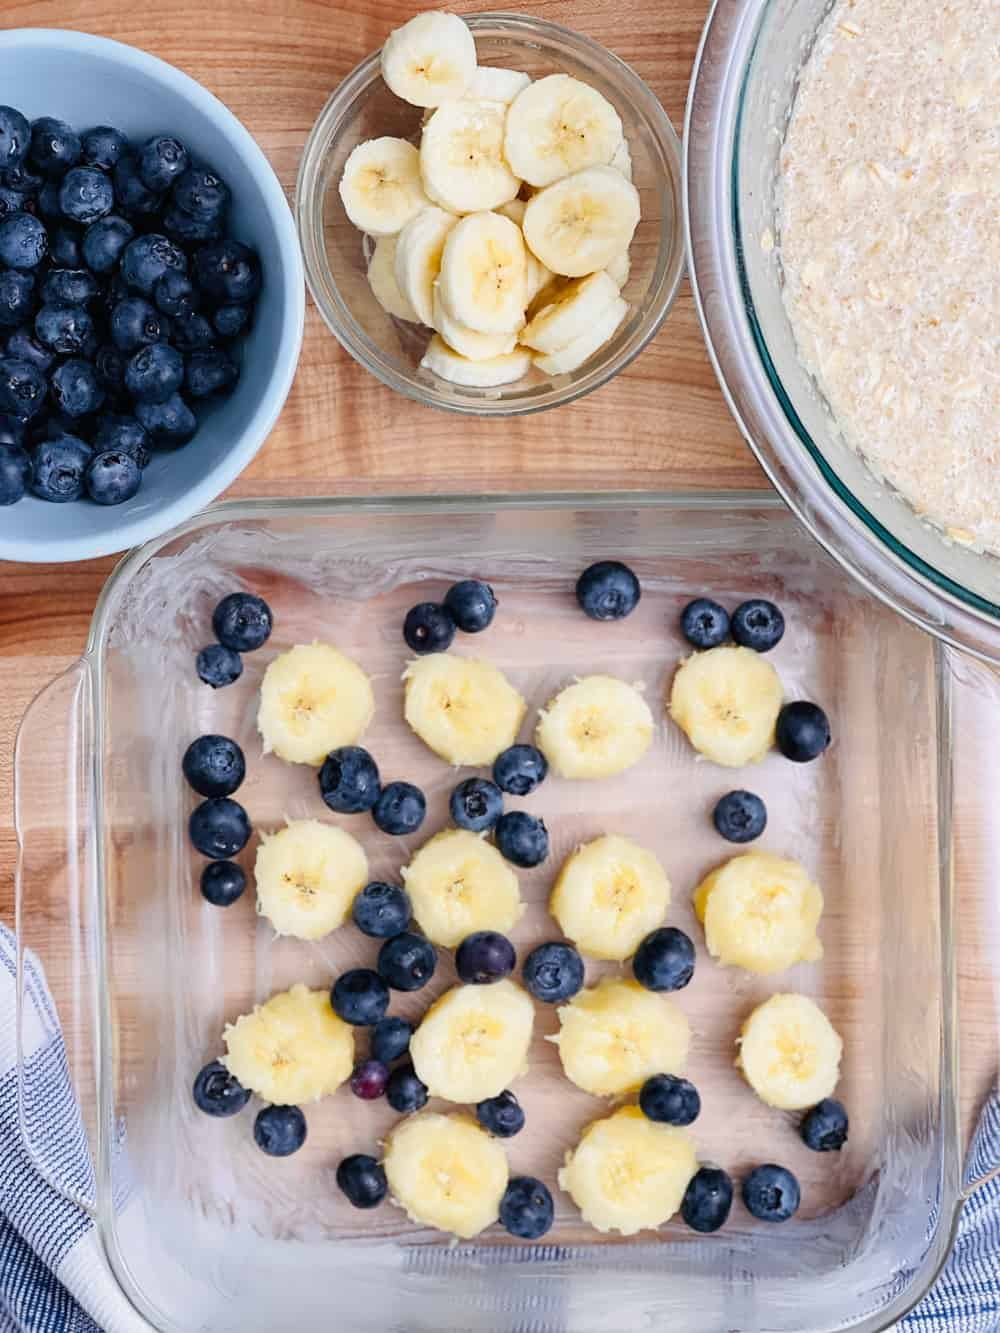 baked oatmeal cake made with blueberries and bananas